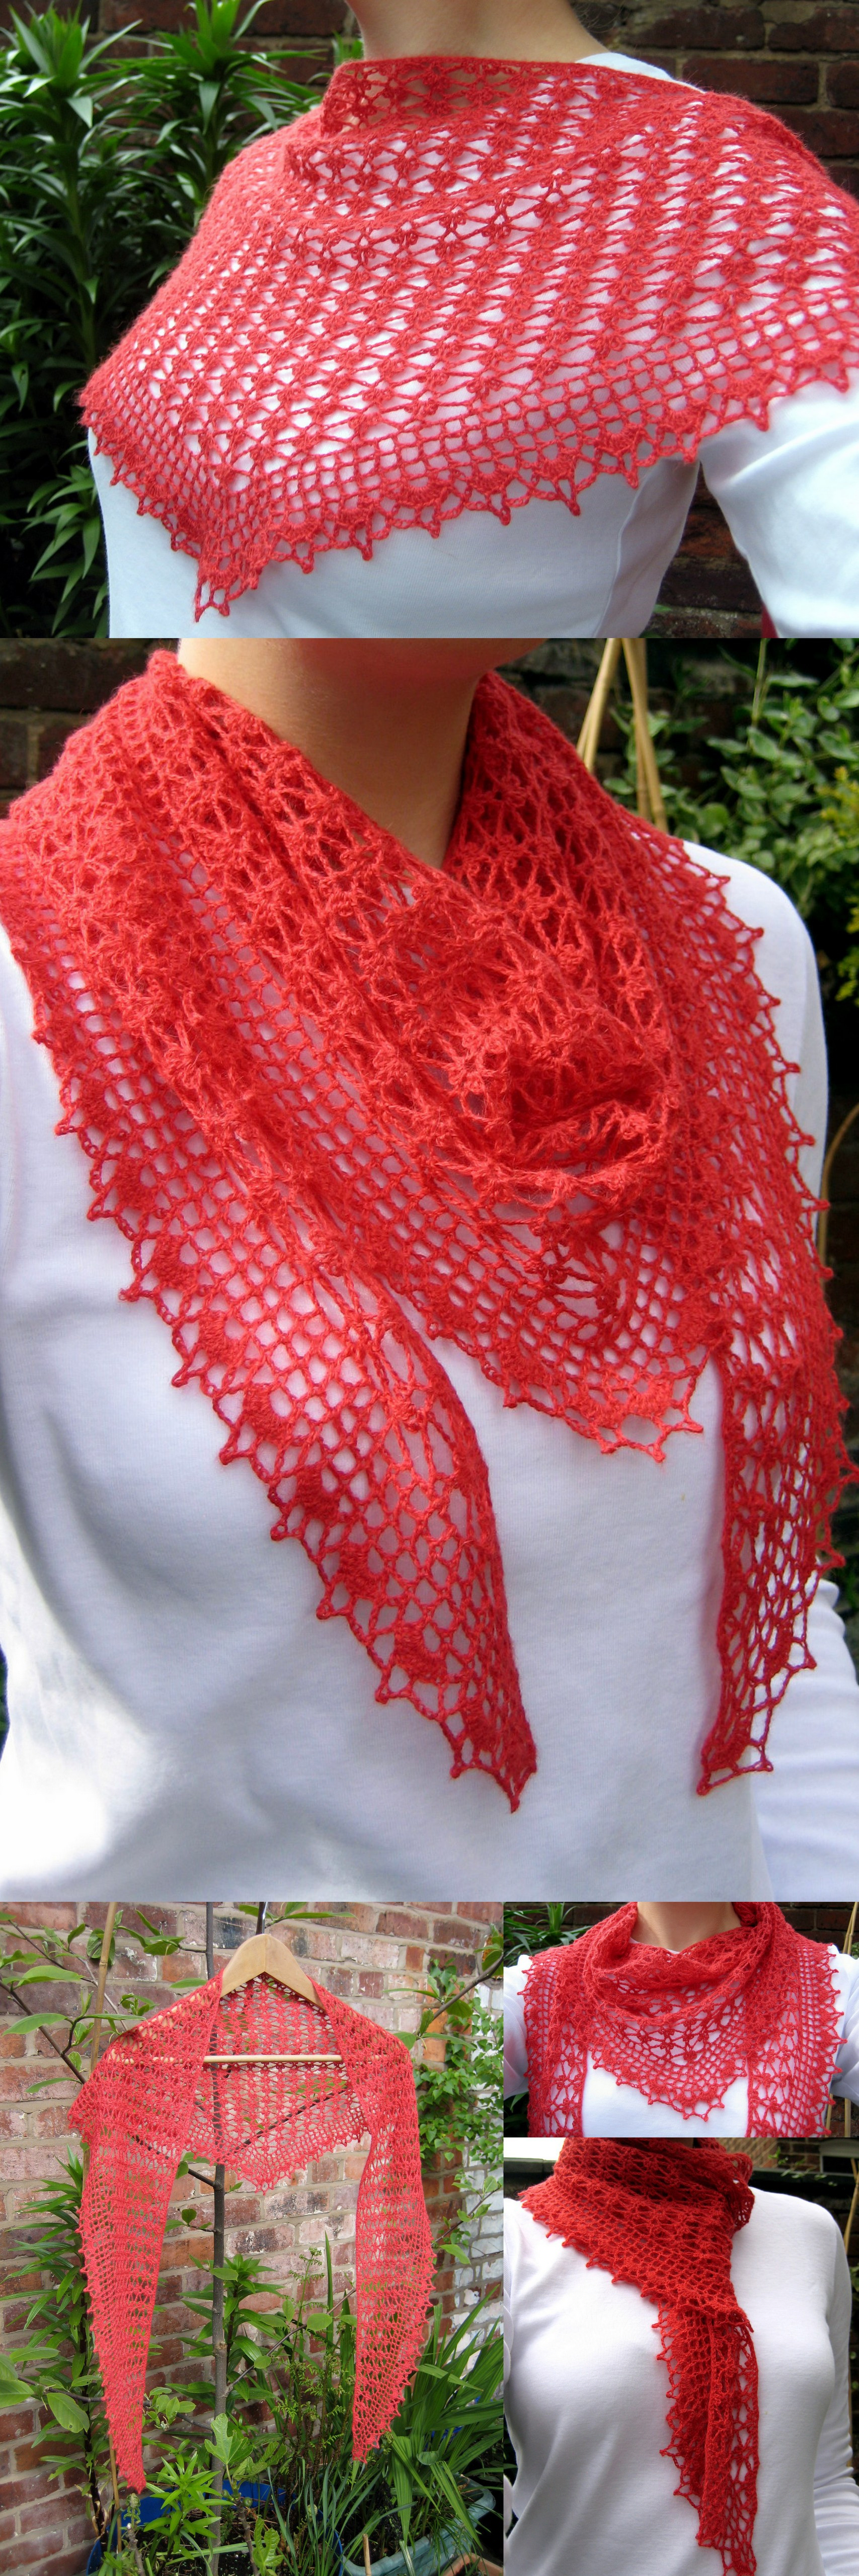 Lace Pattern Awesome Summer Sprigs Lace Scarf Of Delightful 40 Images Lace Pattern